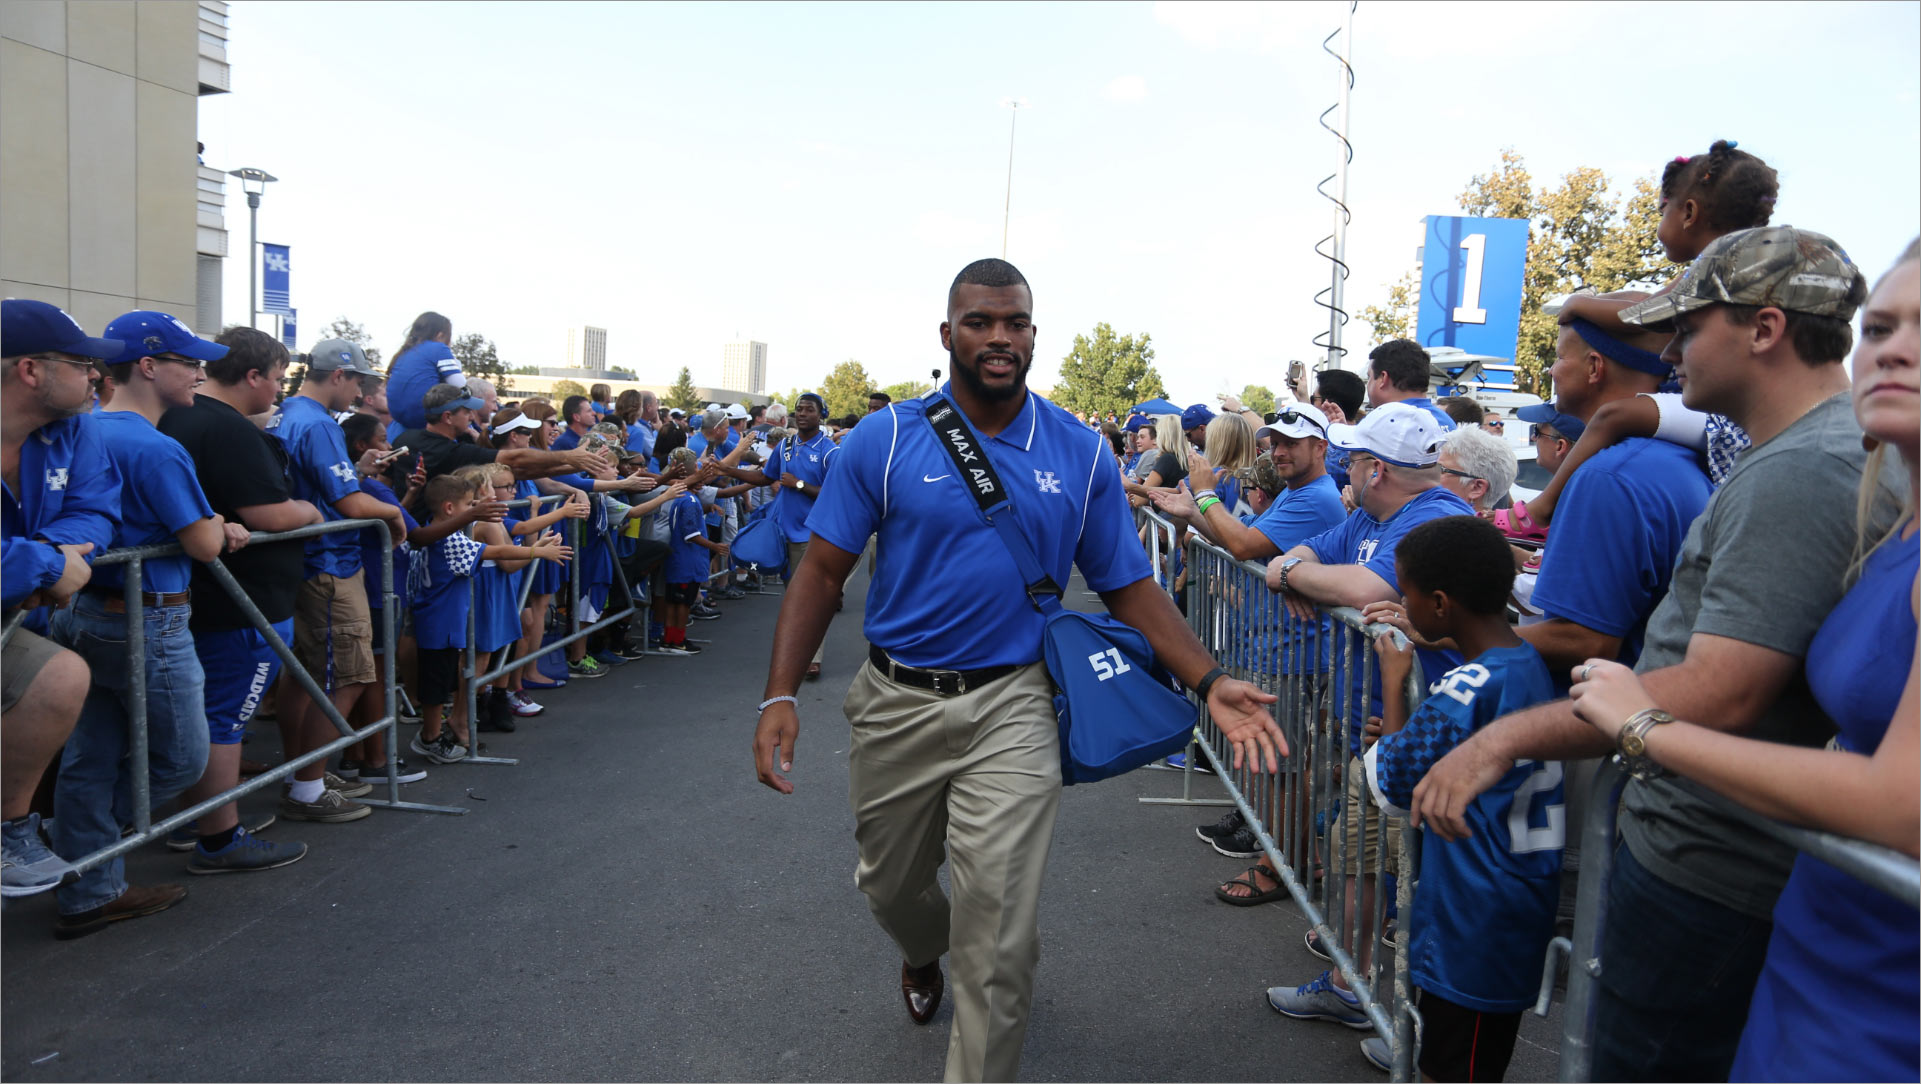 Courtney, wearing a blue polo shirt, walks down the center of two barriers with UK fans behind them. He holds out his hand to give a little boy a high five.